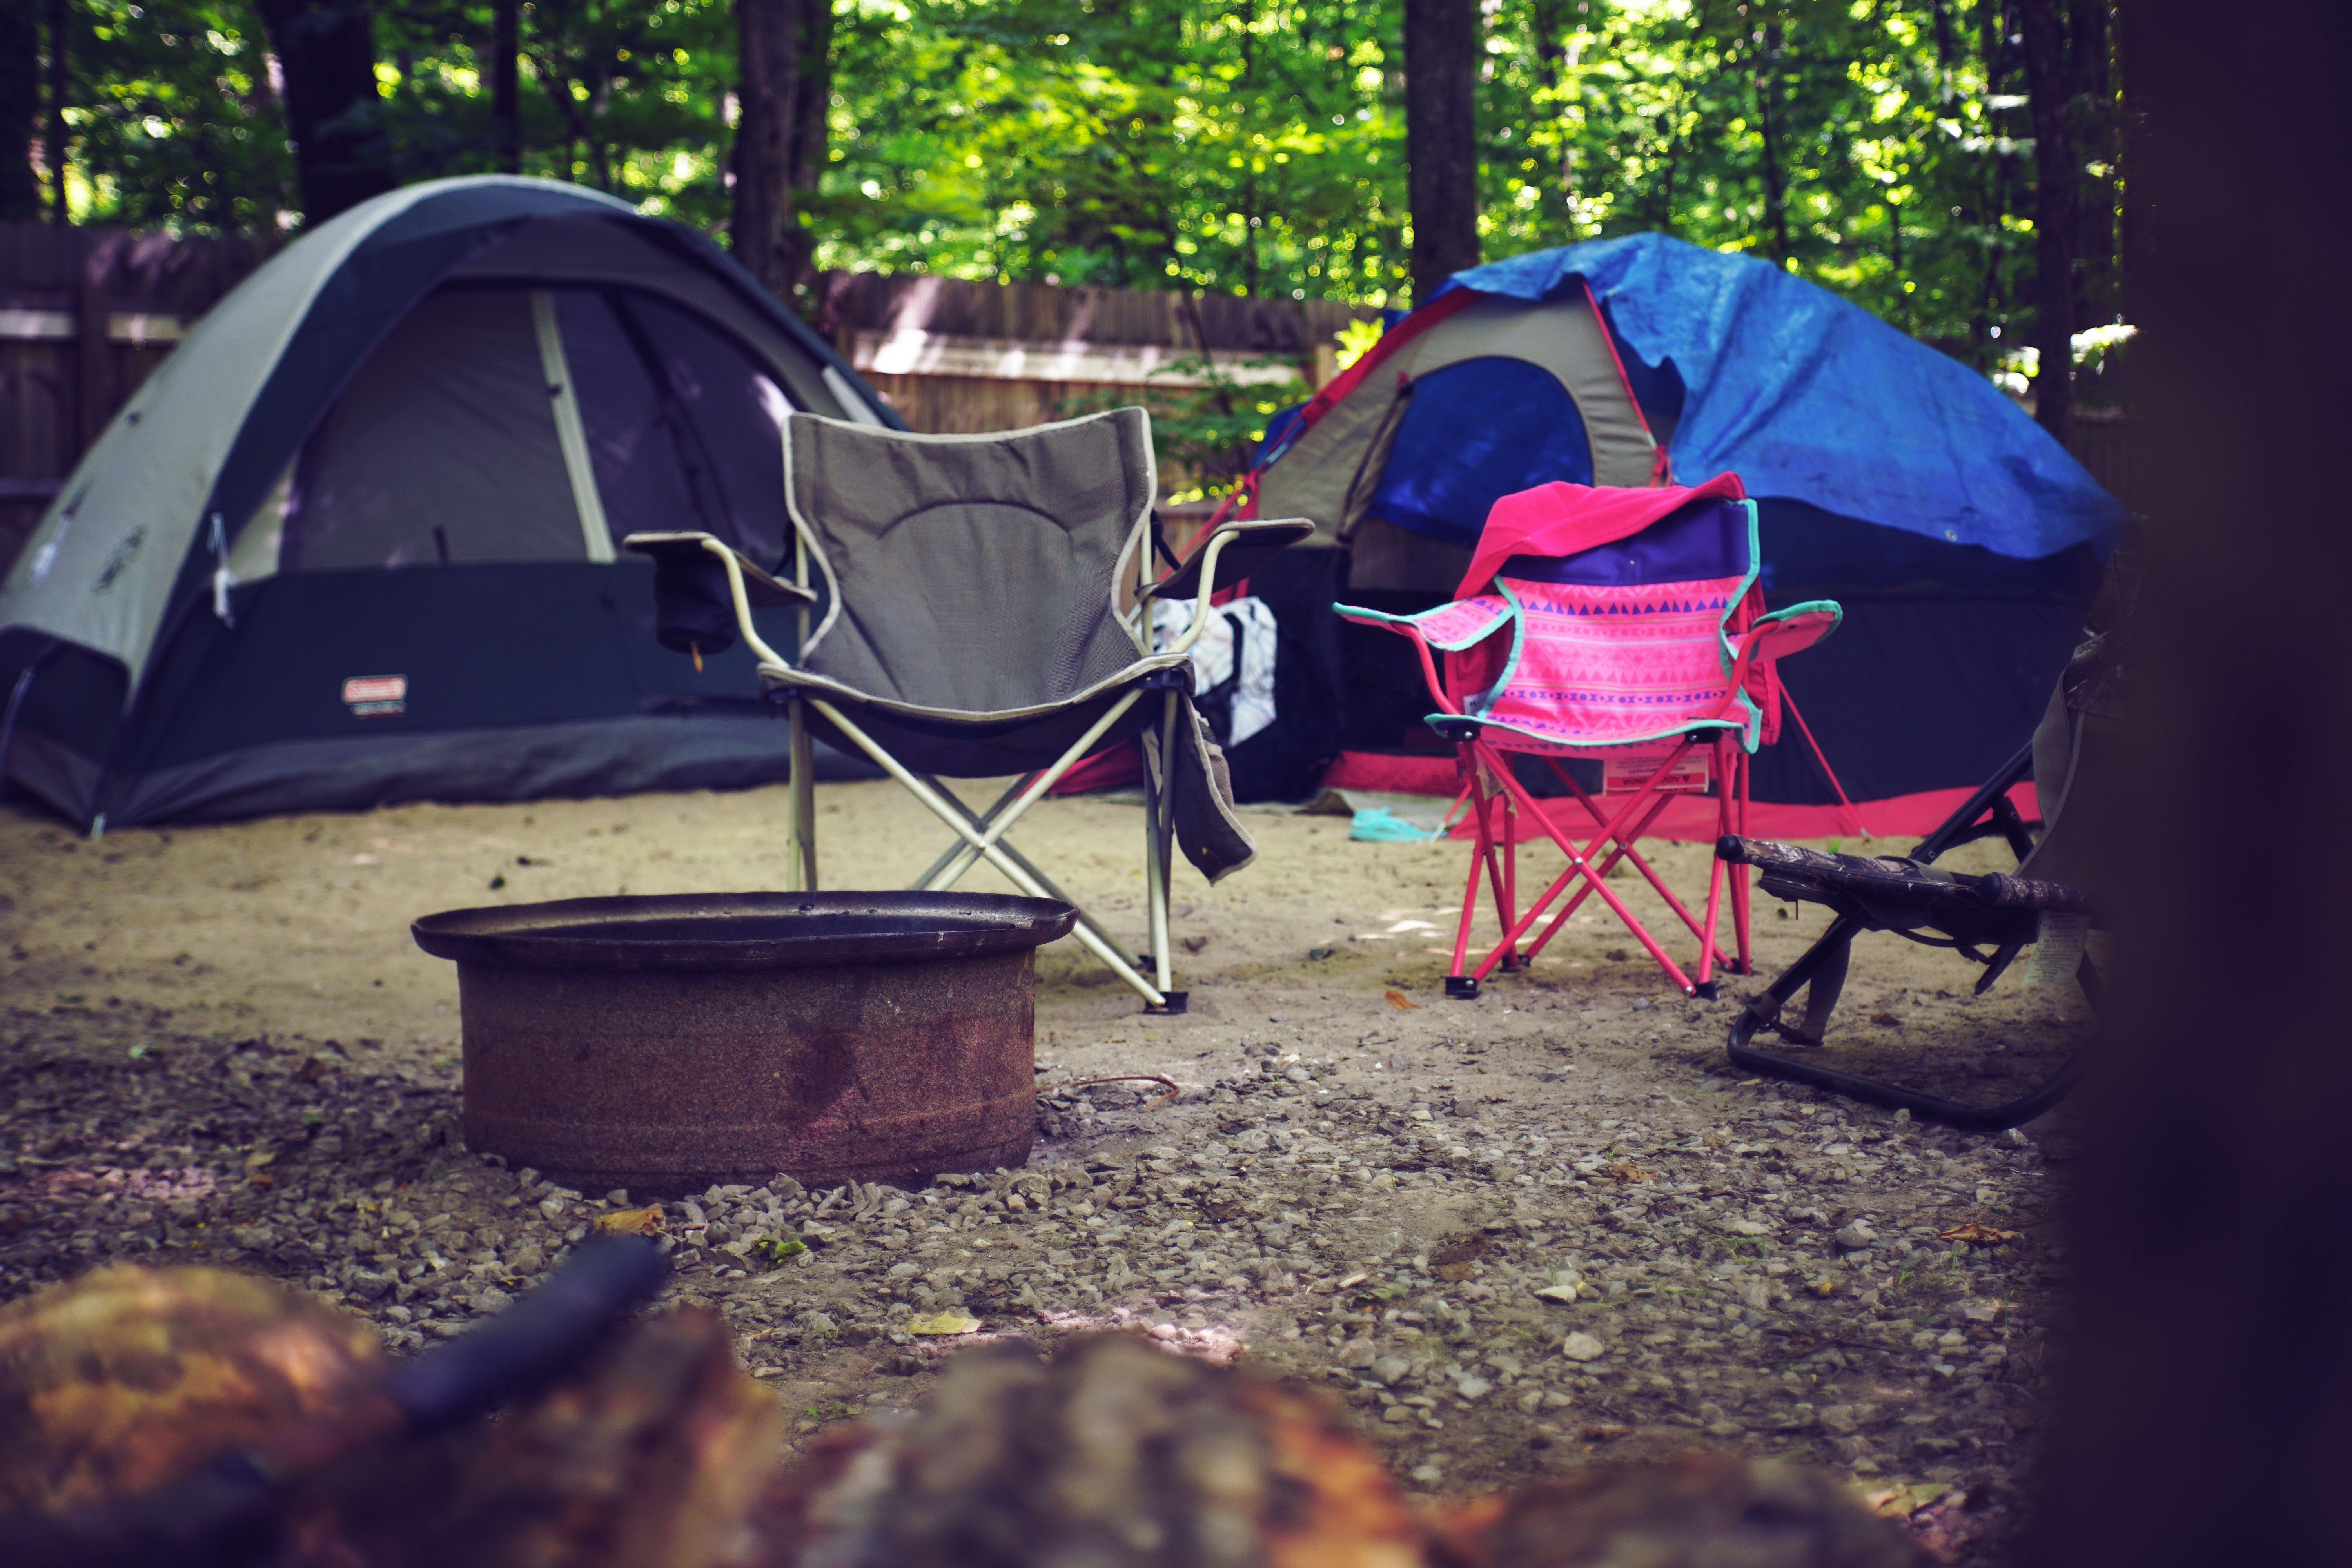 Pictured - Camping chairs and tents   Source: Pexels